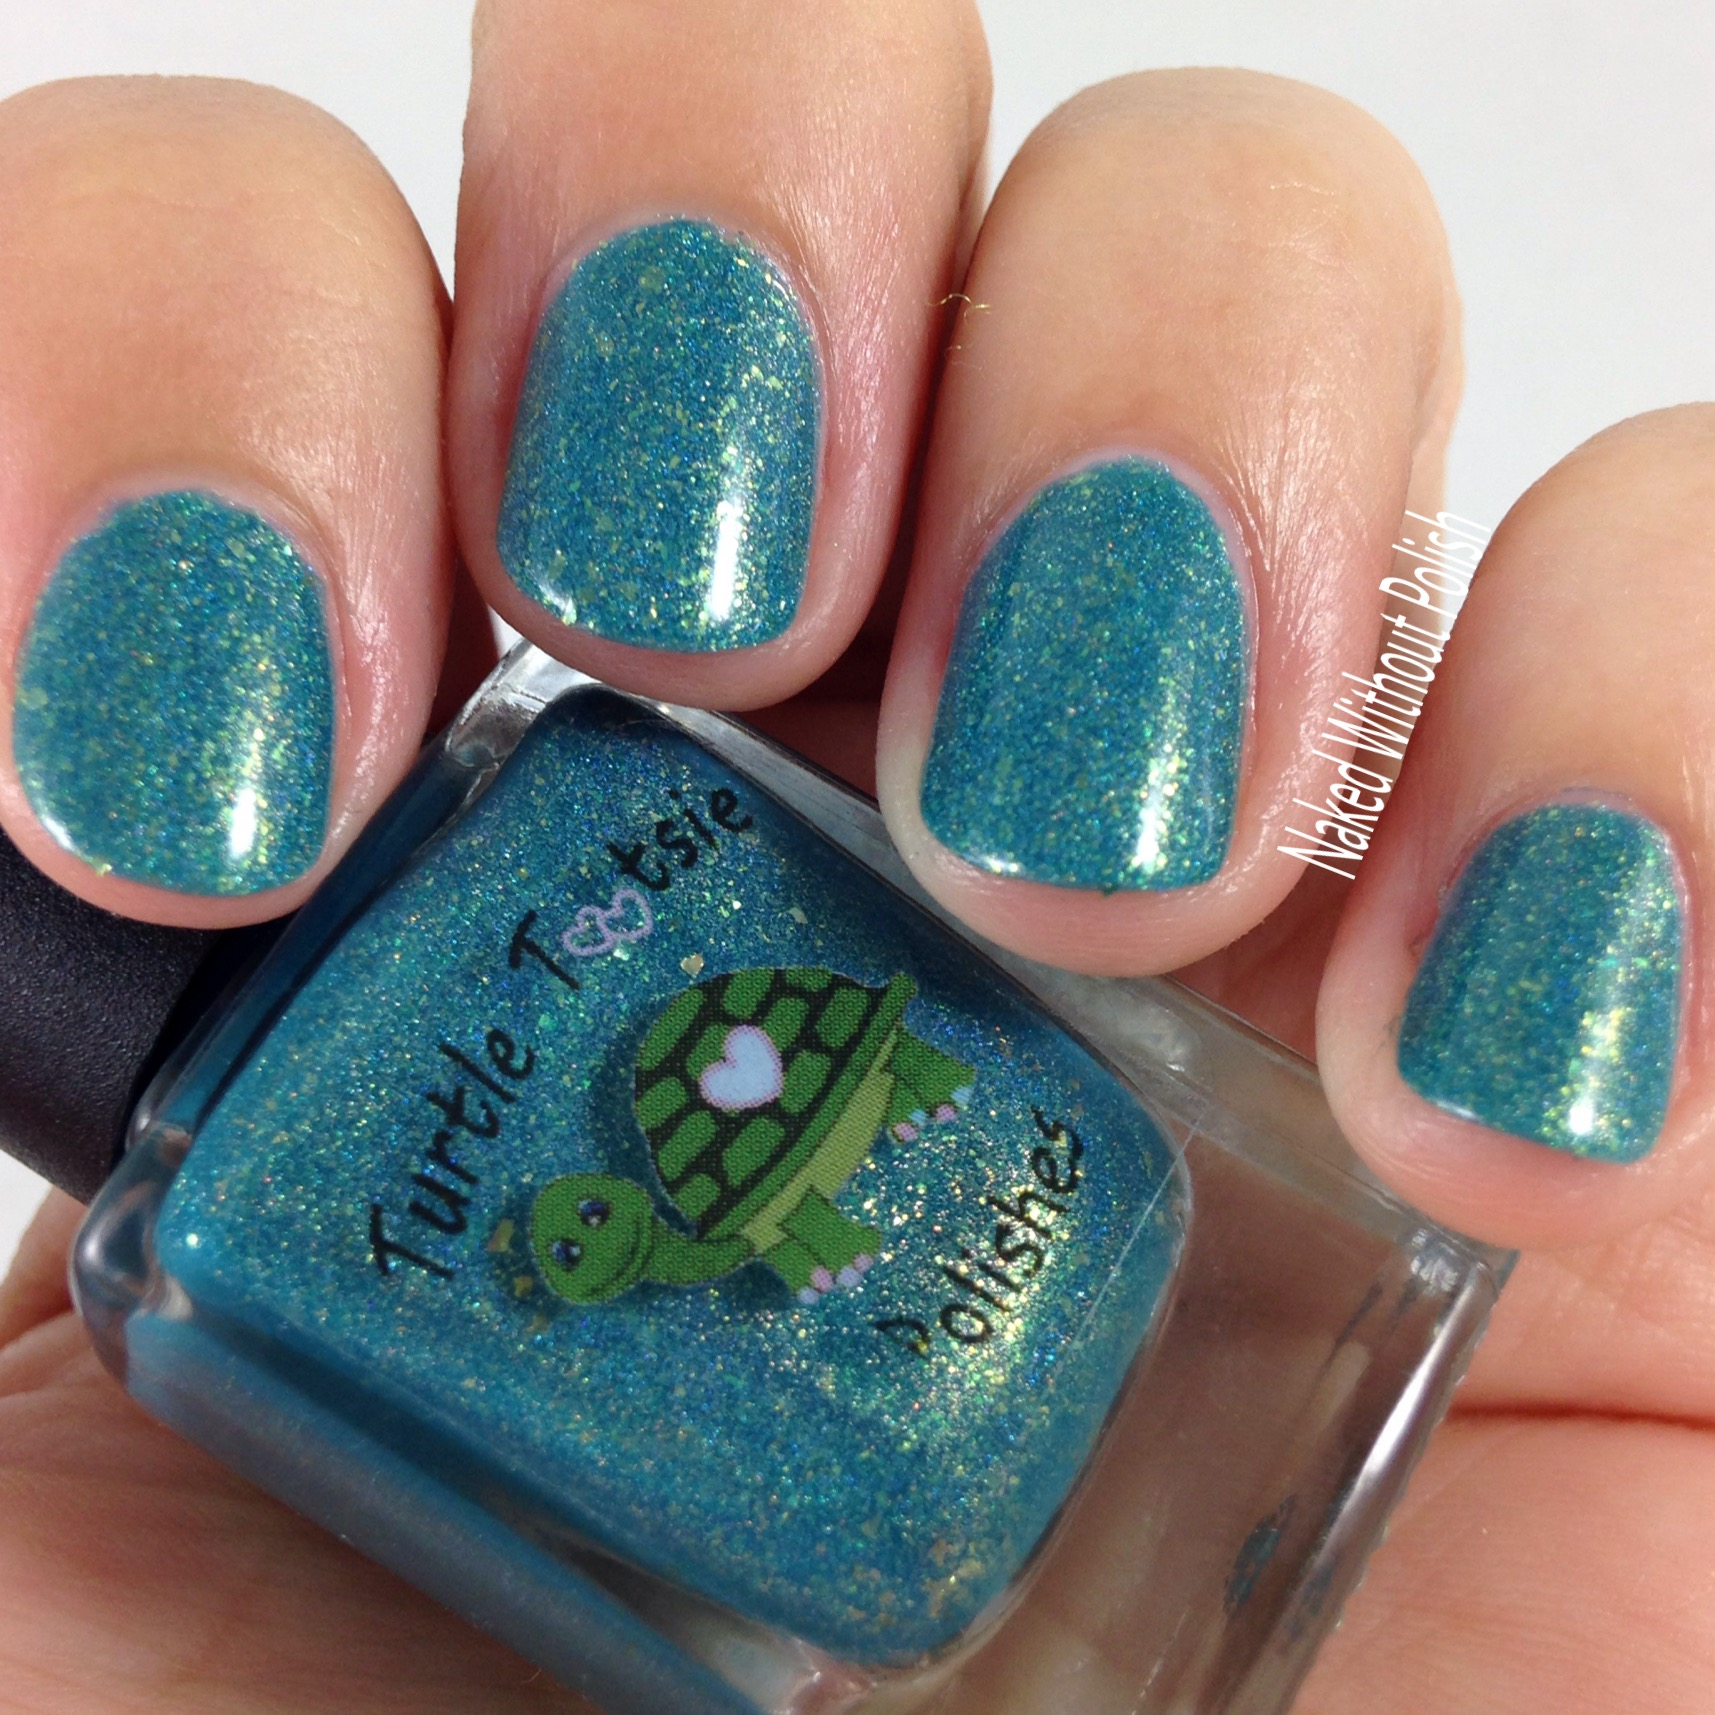 Turtle-Tootsie-Polishes-Summer-Dreams-Ripped-at-the-Seams-6